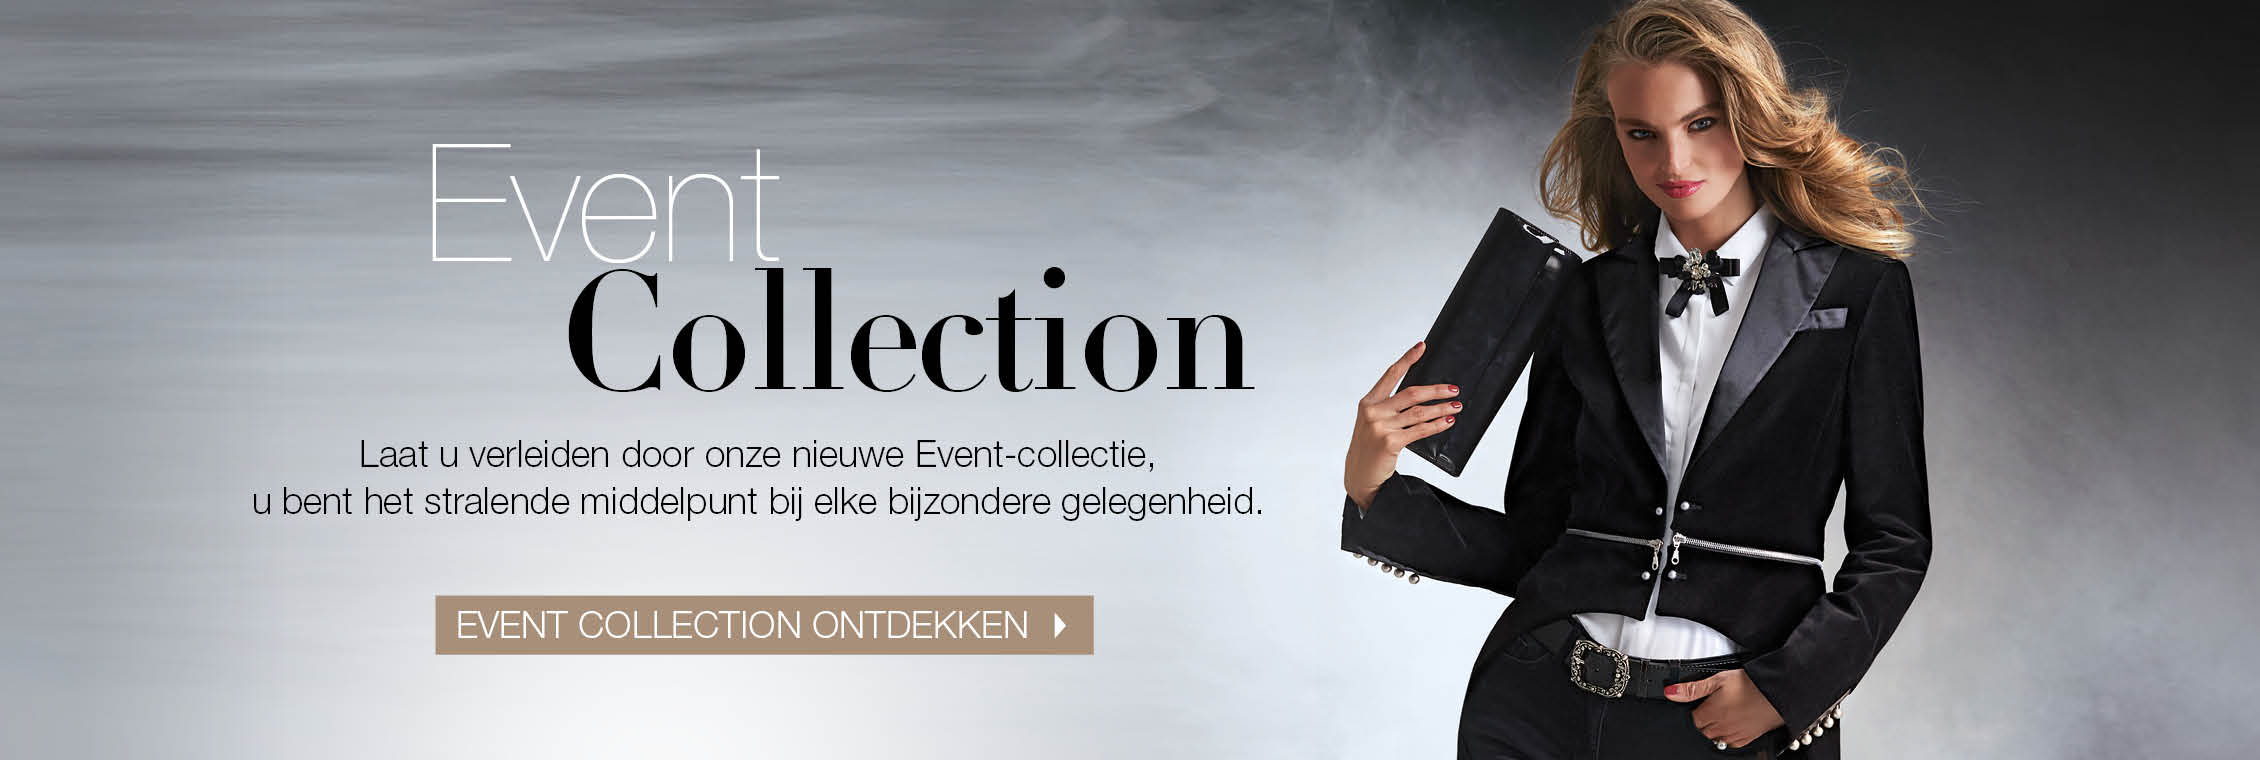 EVENT COLLECTION ONTDEKKEN